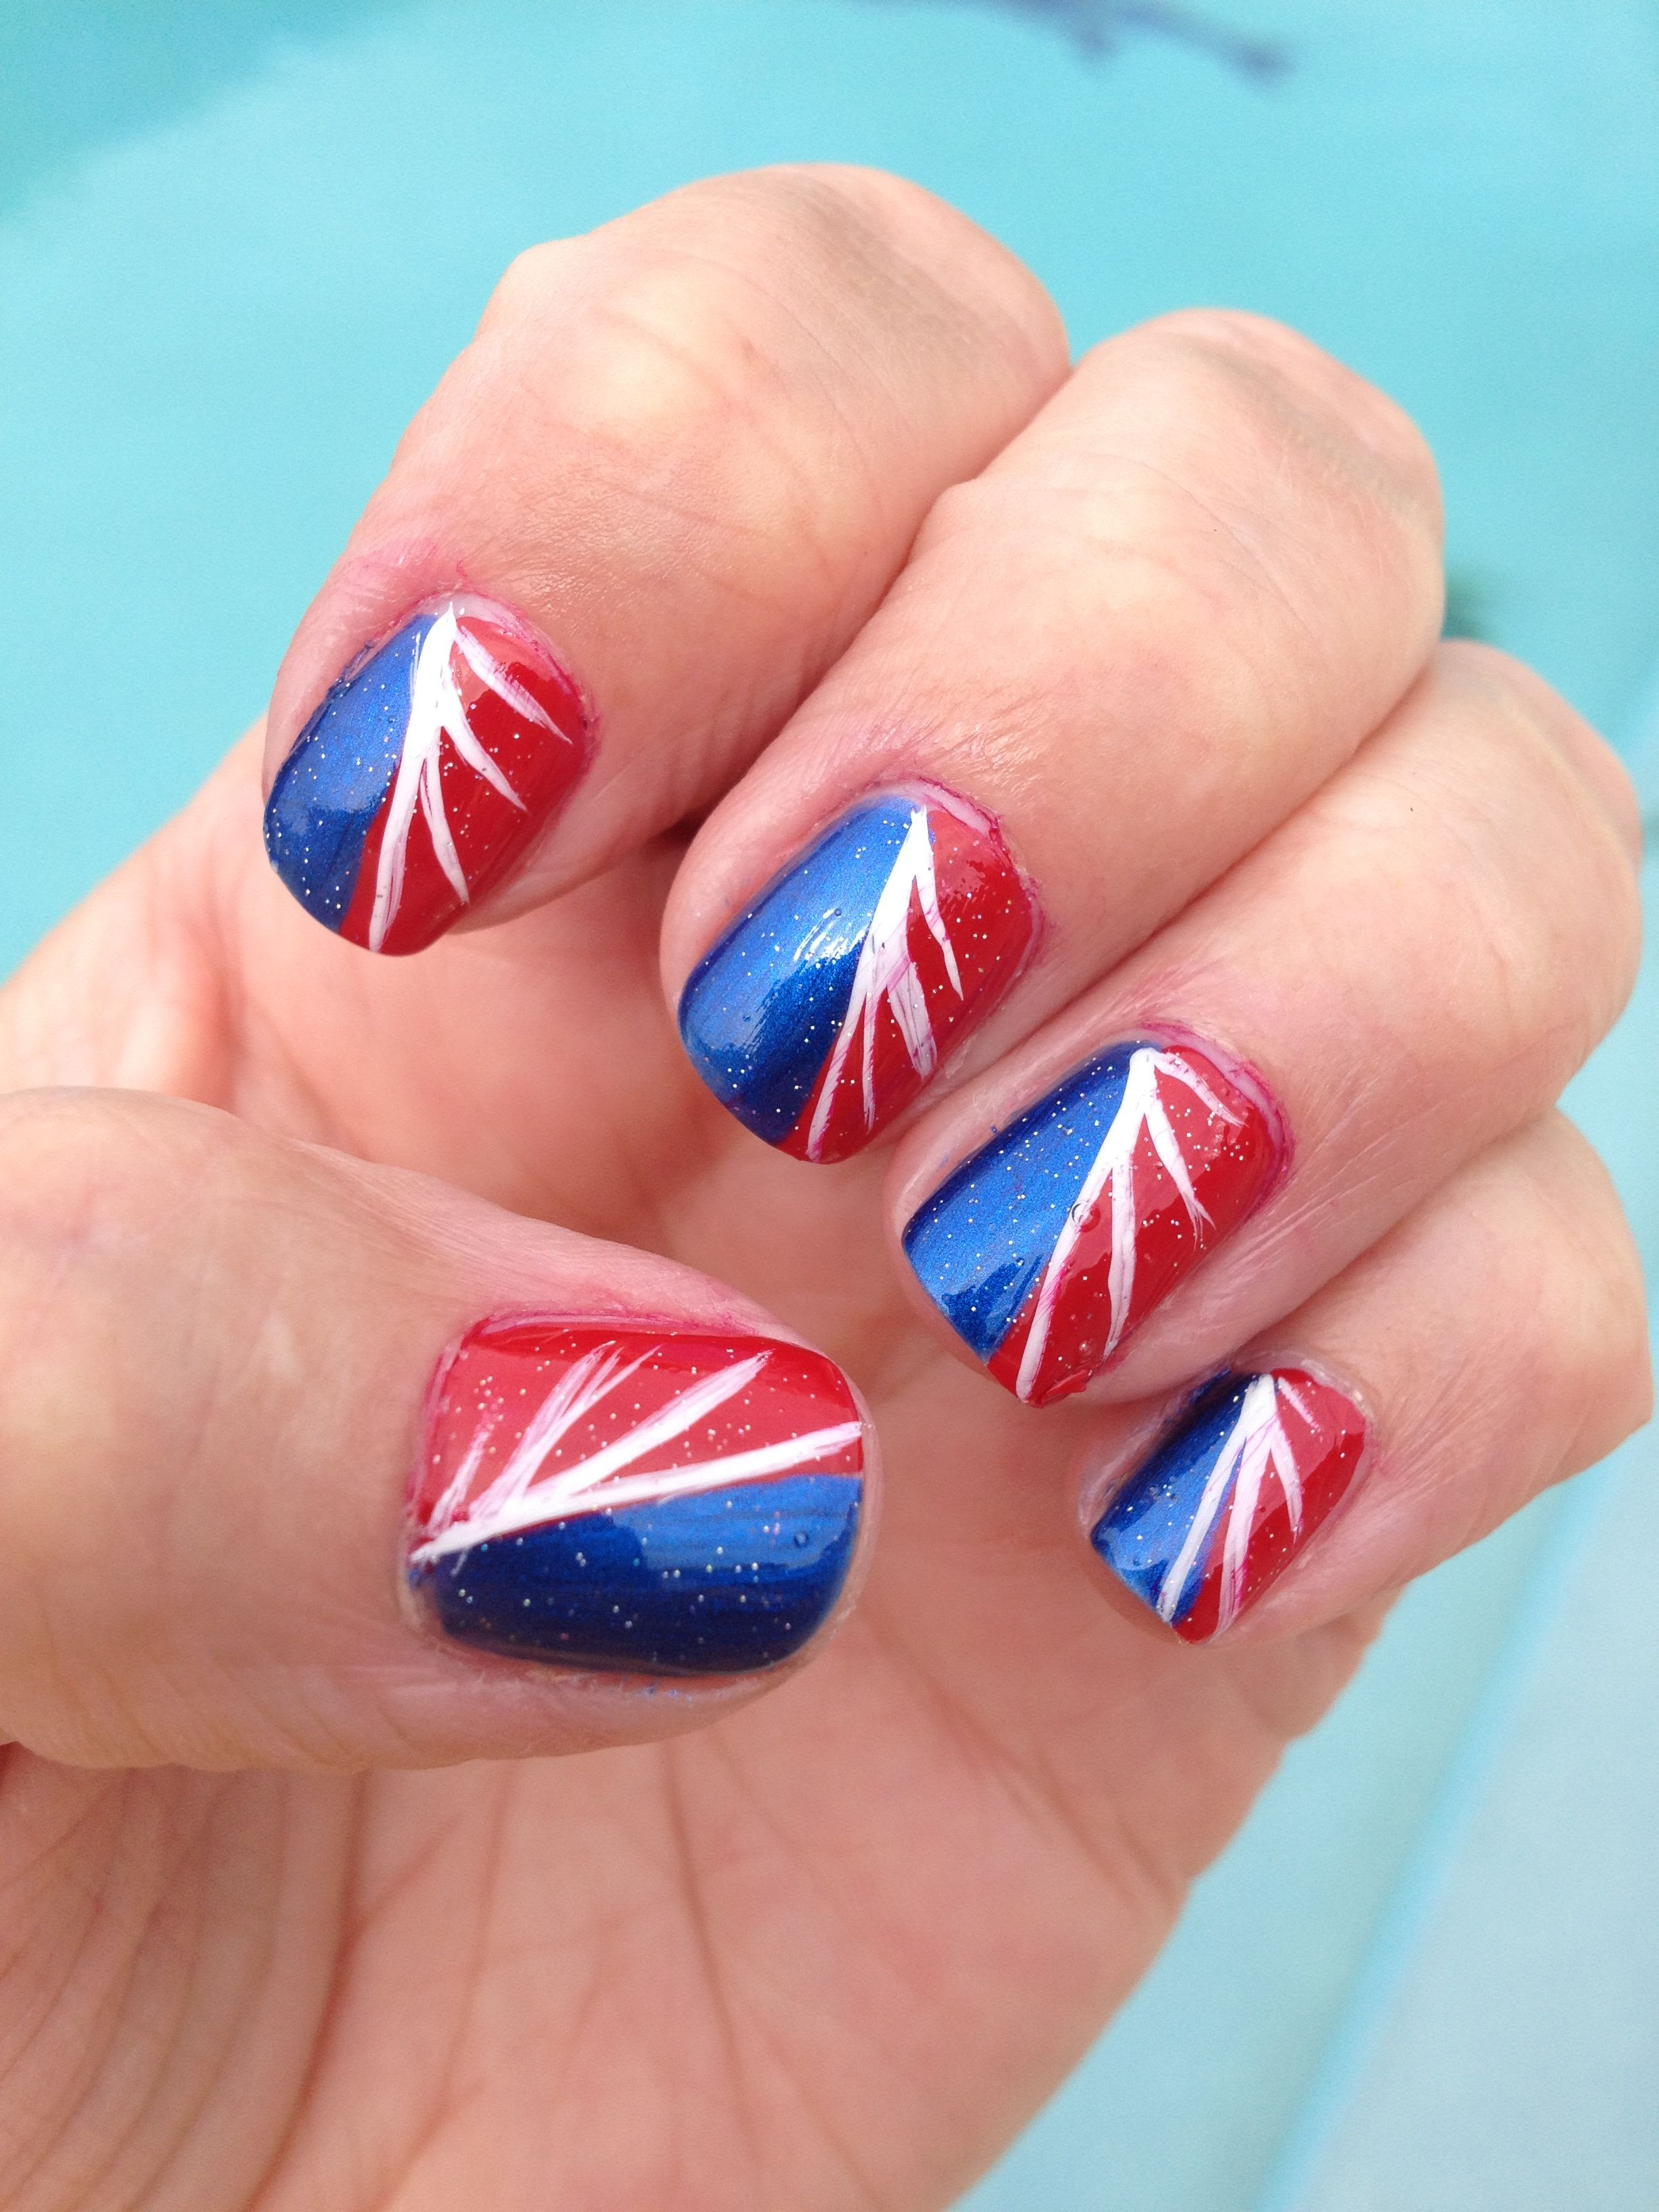 Easy nail designs 4th of July nails!   Cu-ute   Pinterest